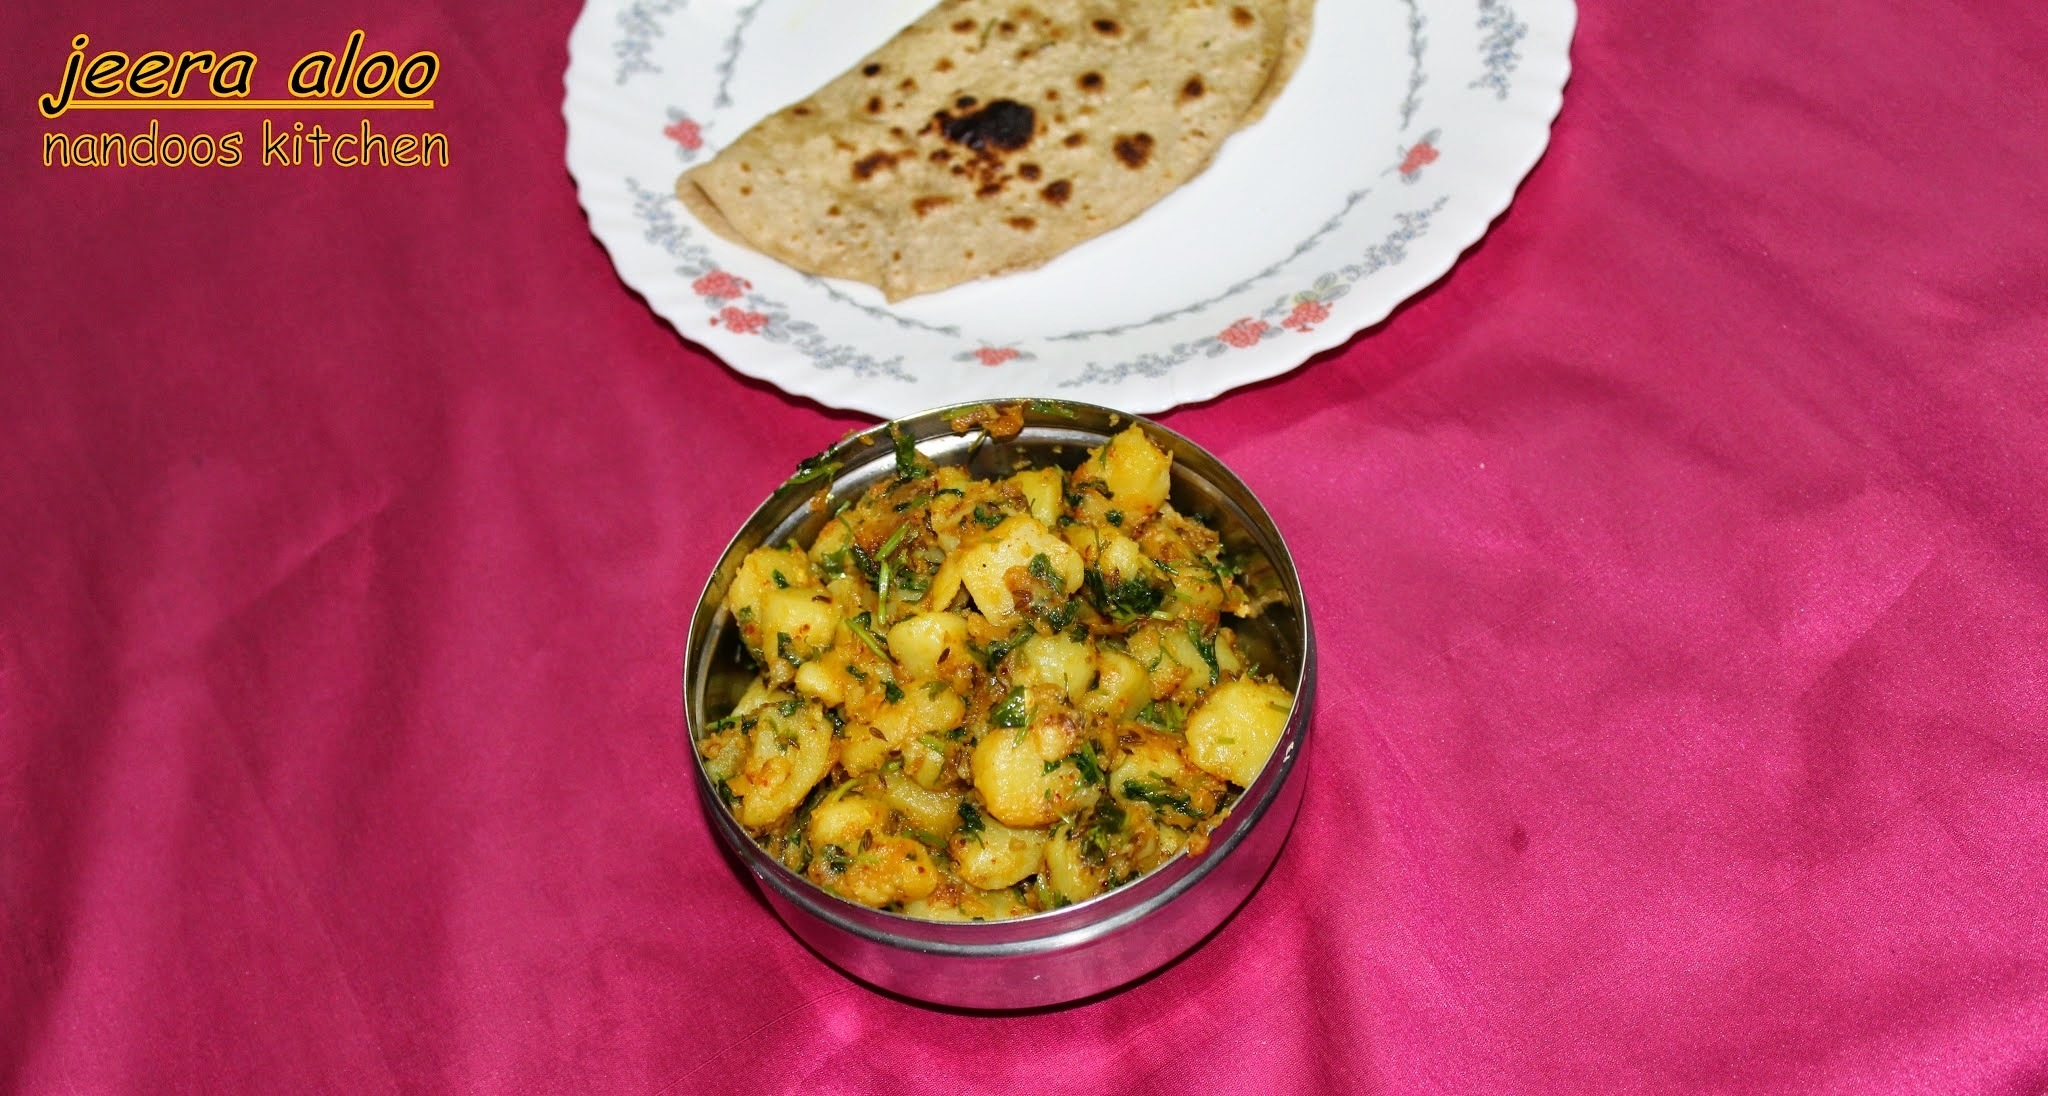 Jeera aloo / potato with cumin / side dish for roti, rice